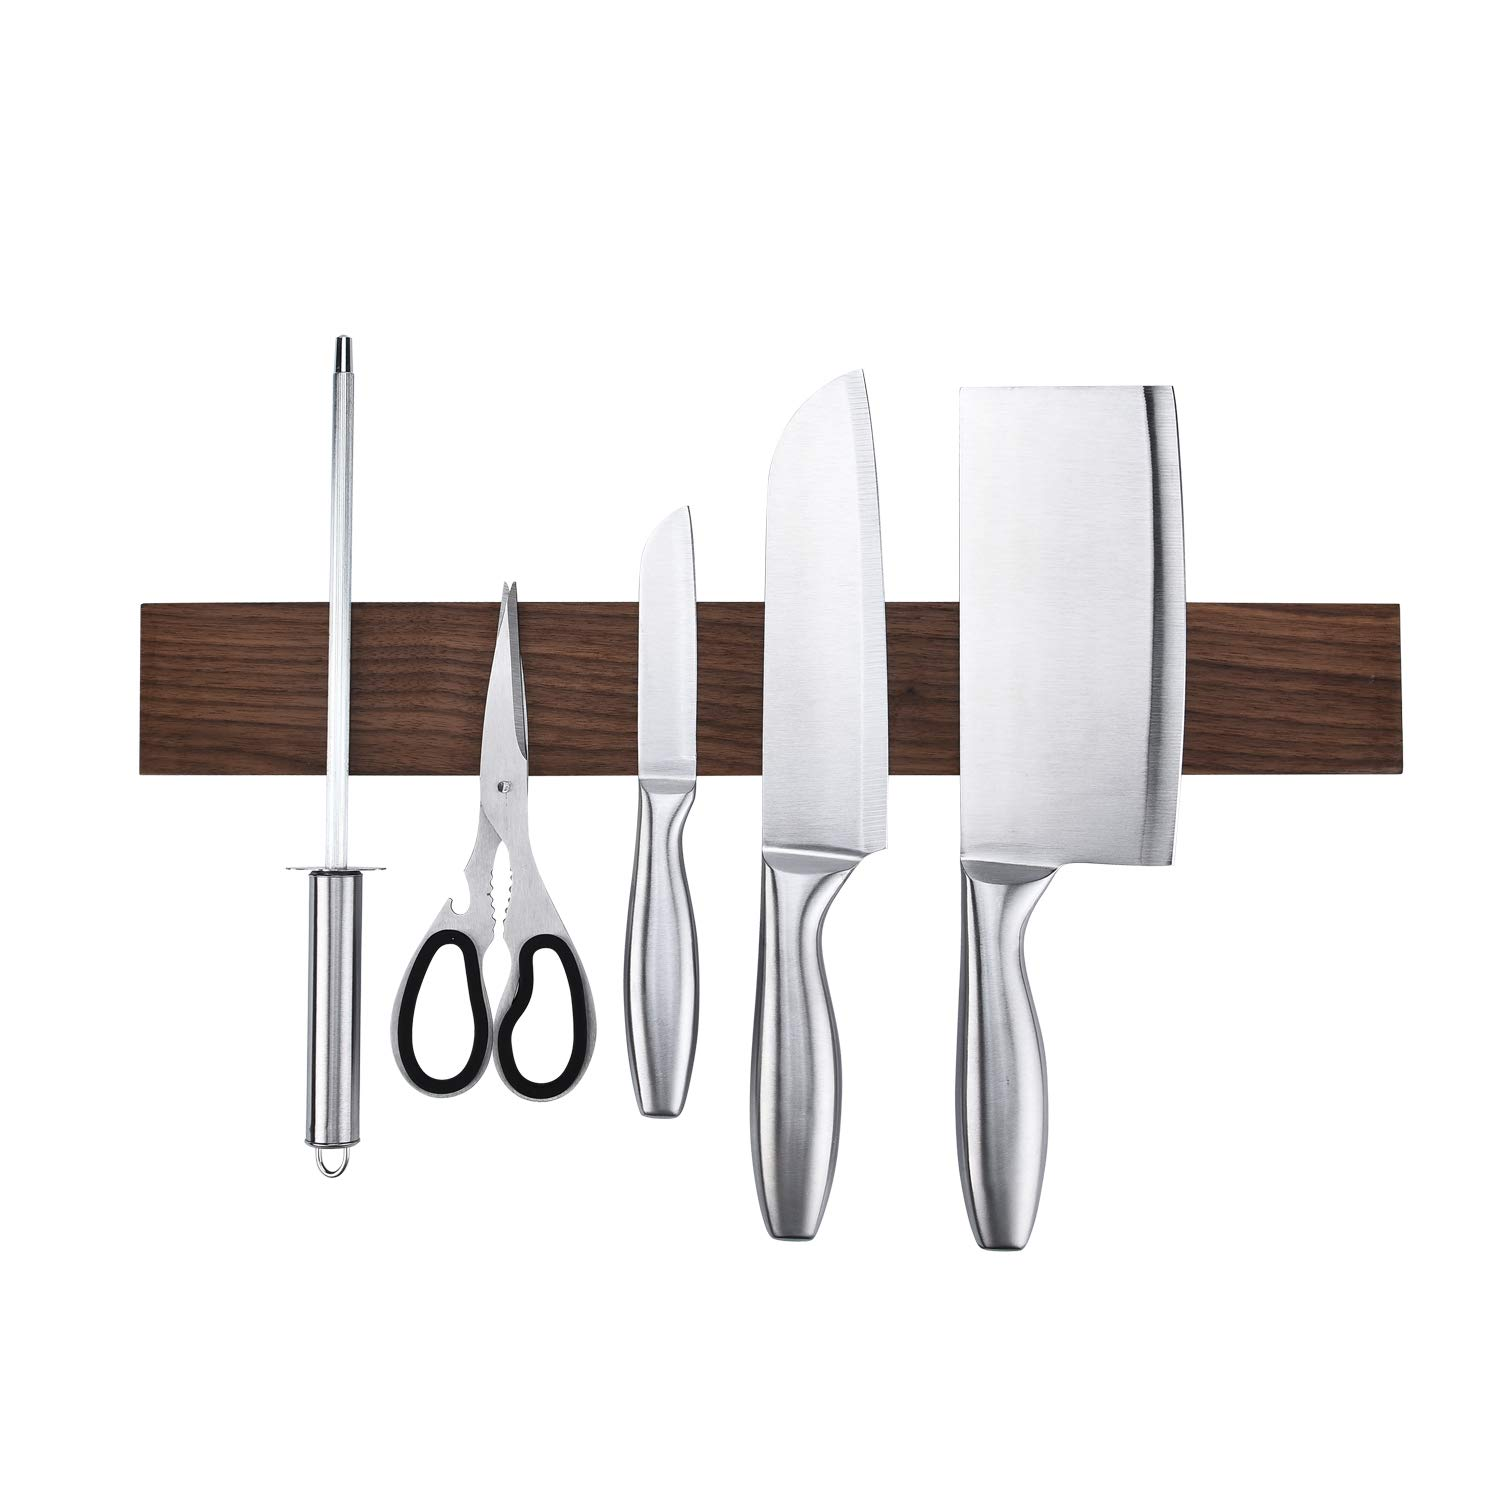 Walnut Magnetic Knife Holder 18 Inch - Wall Mount Wooden Knife Strip, Rack, Bar With Double Row Powerful Magnets, Space-Saving Utensil Organizer by KitchenShark (Image #2)